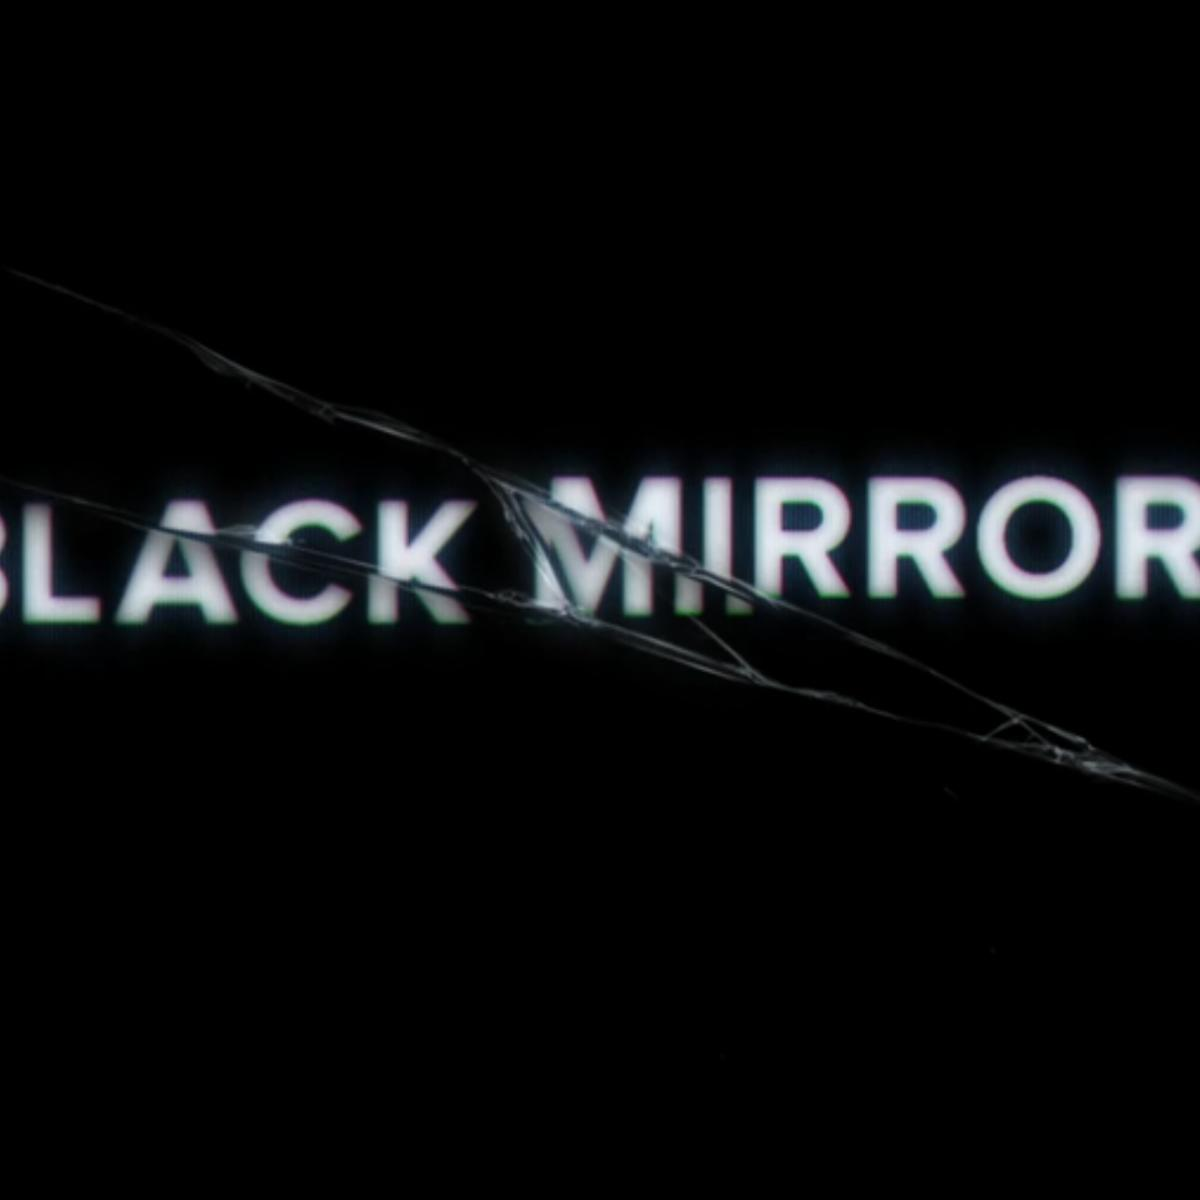 Netflix Leaks 'Black Mirror: Bandersnatch' Movie Details, Season 5 Release Date